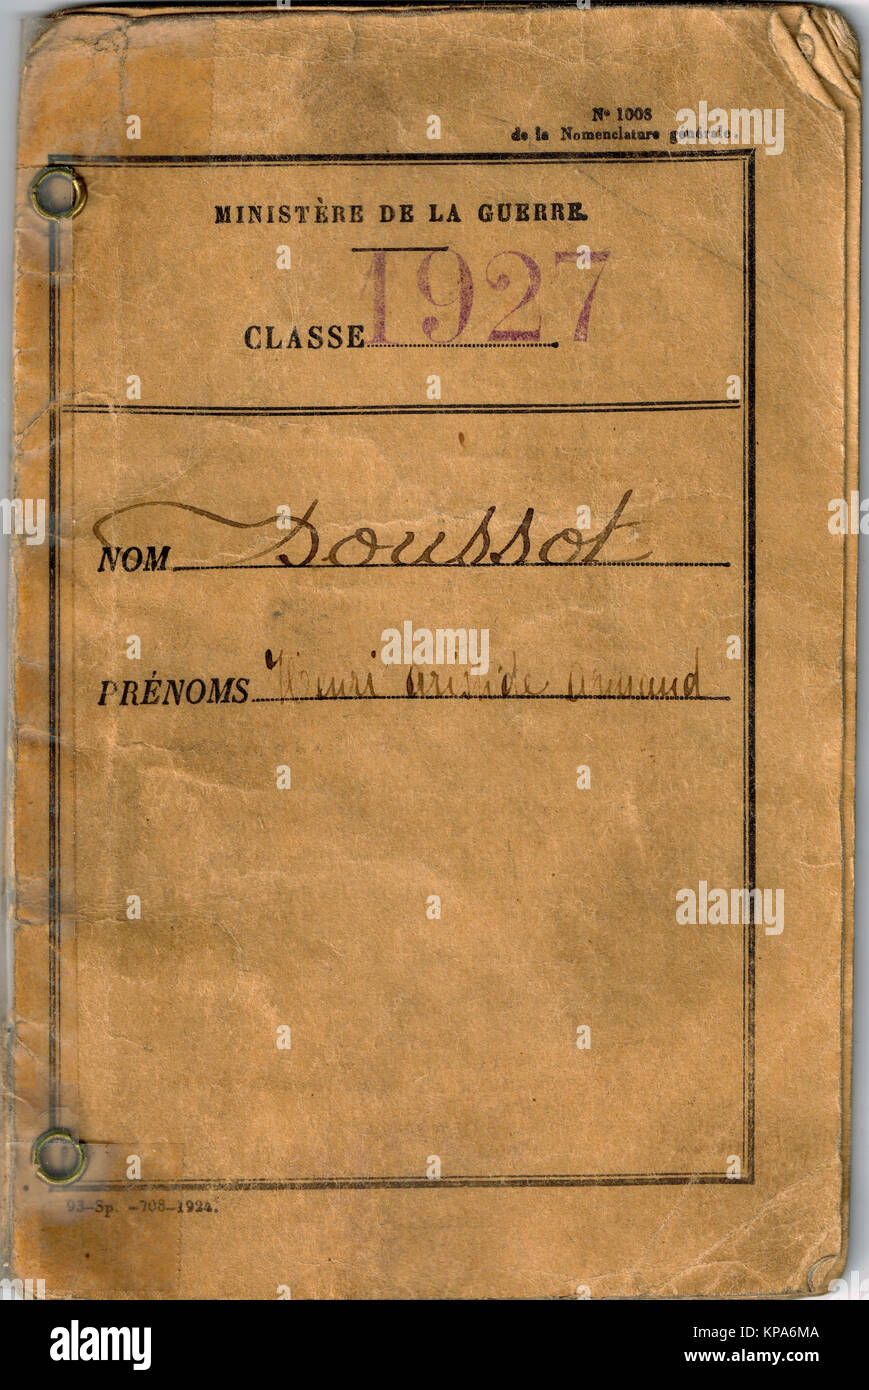 WWII French military booklet, Lyon, France - Stock Image